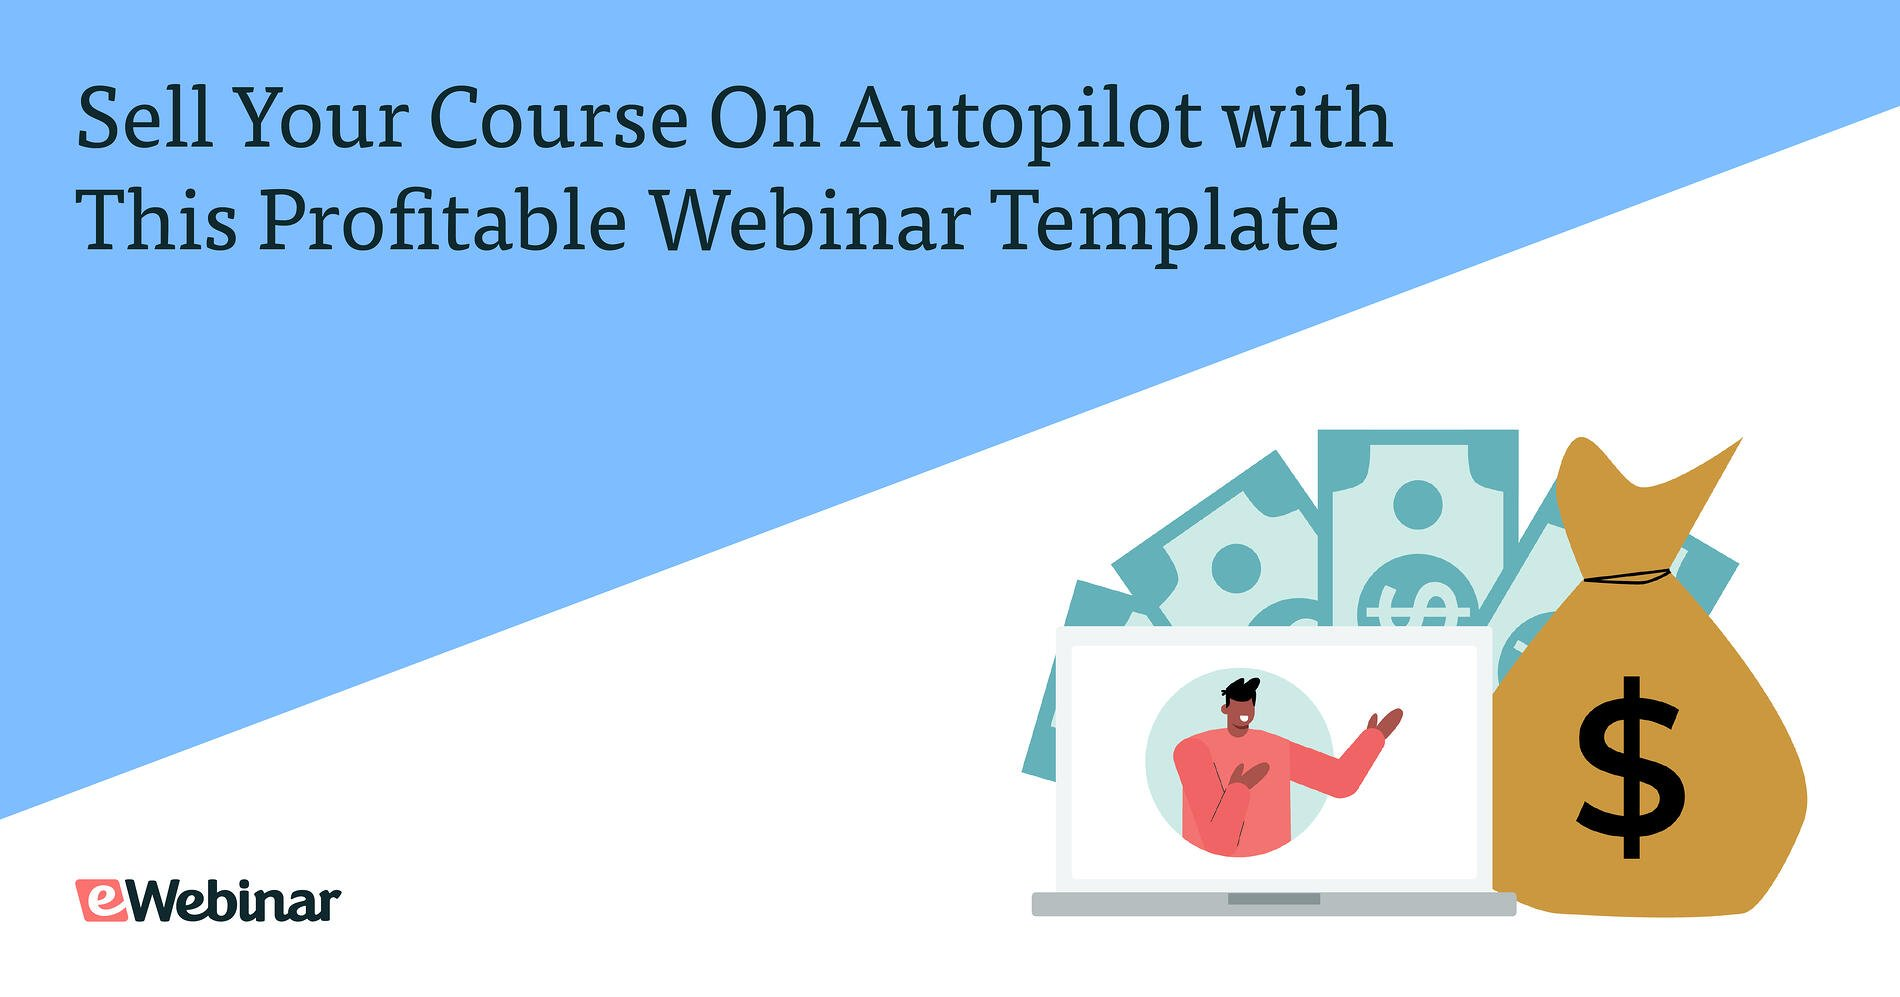 Sell Your Online Course on Autopilot with This Profitable Webinar Template